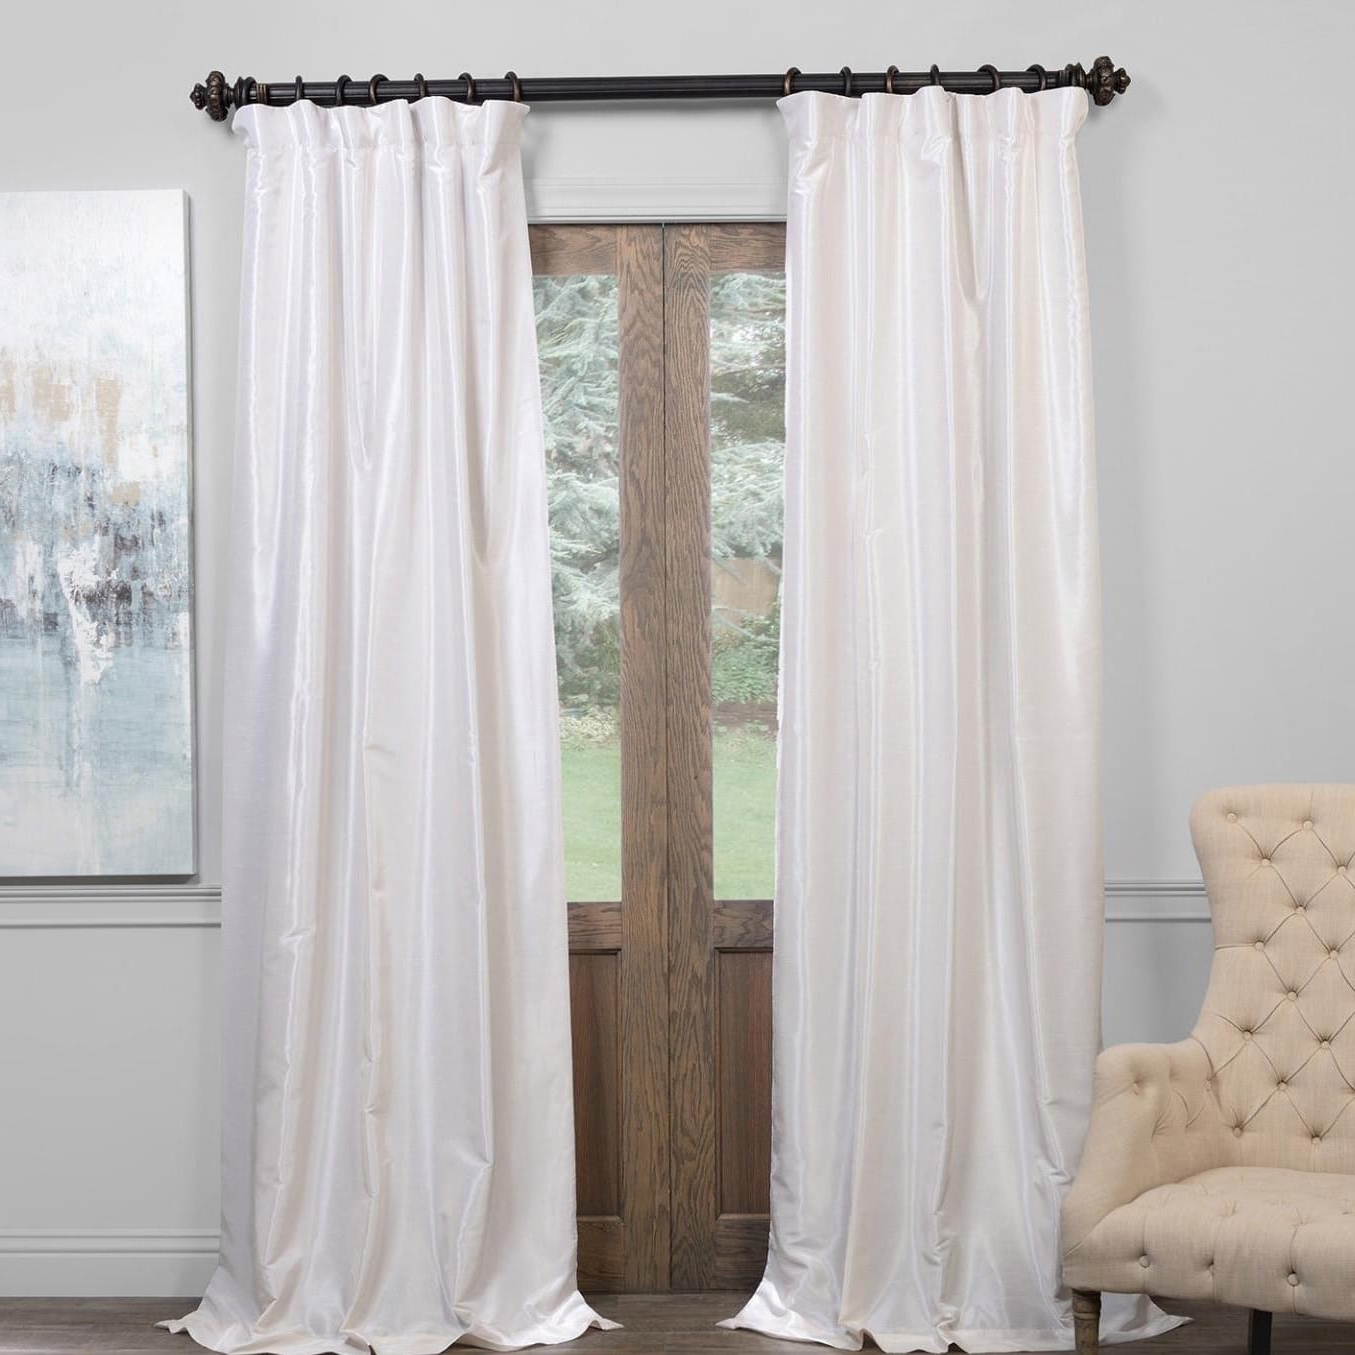 Exclusive Fabrics True Blackout Vintage Textured Faux In Widely Used Off White Vintage Faux Textured Silk Curtains (Gallery 9 of 20)